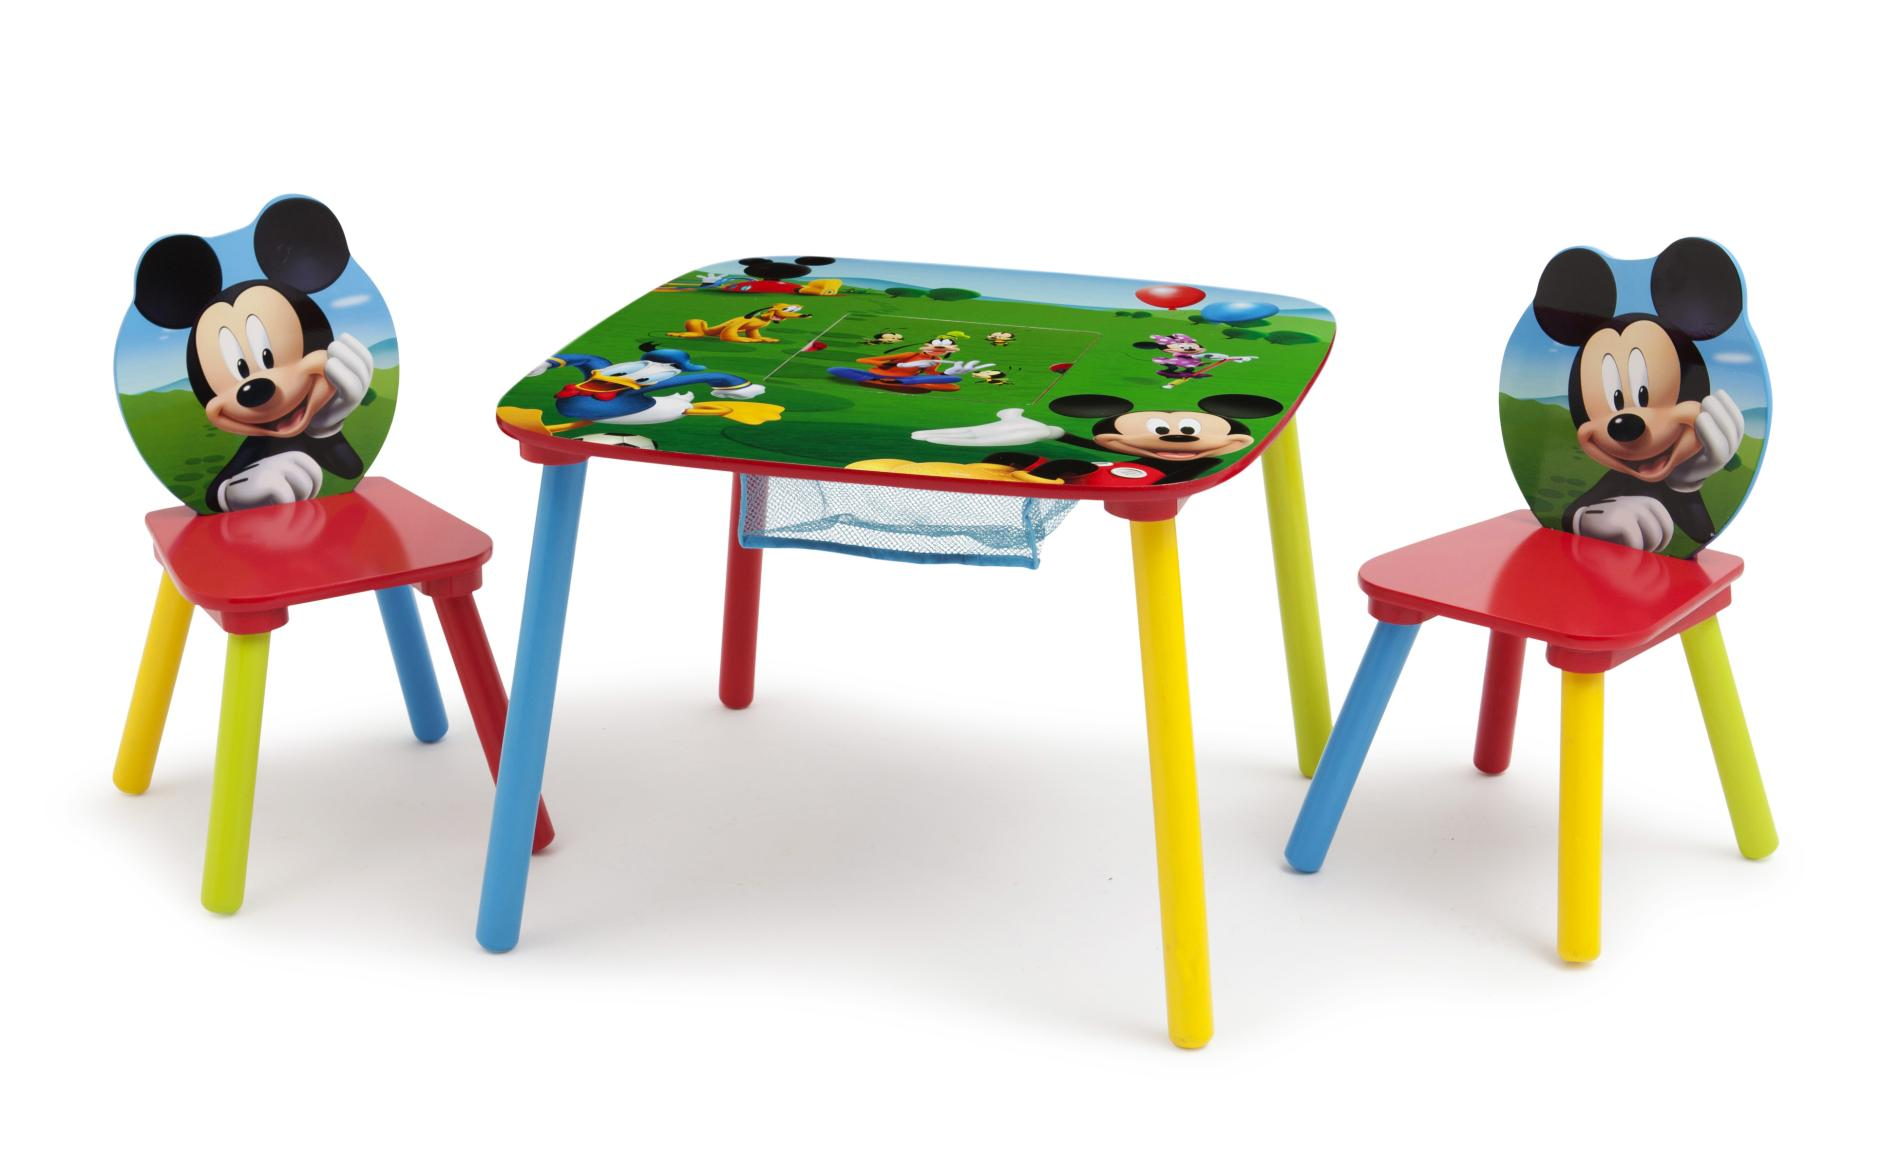 Mickey Mouse Chairs For Toddlers Disney Mickey Mouse Table 2 Chairs